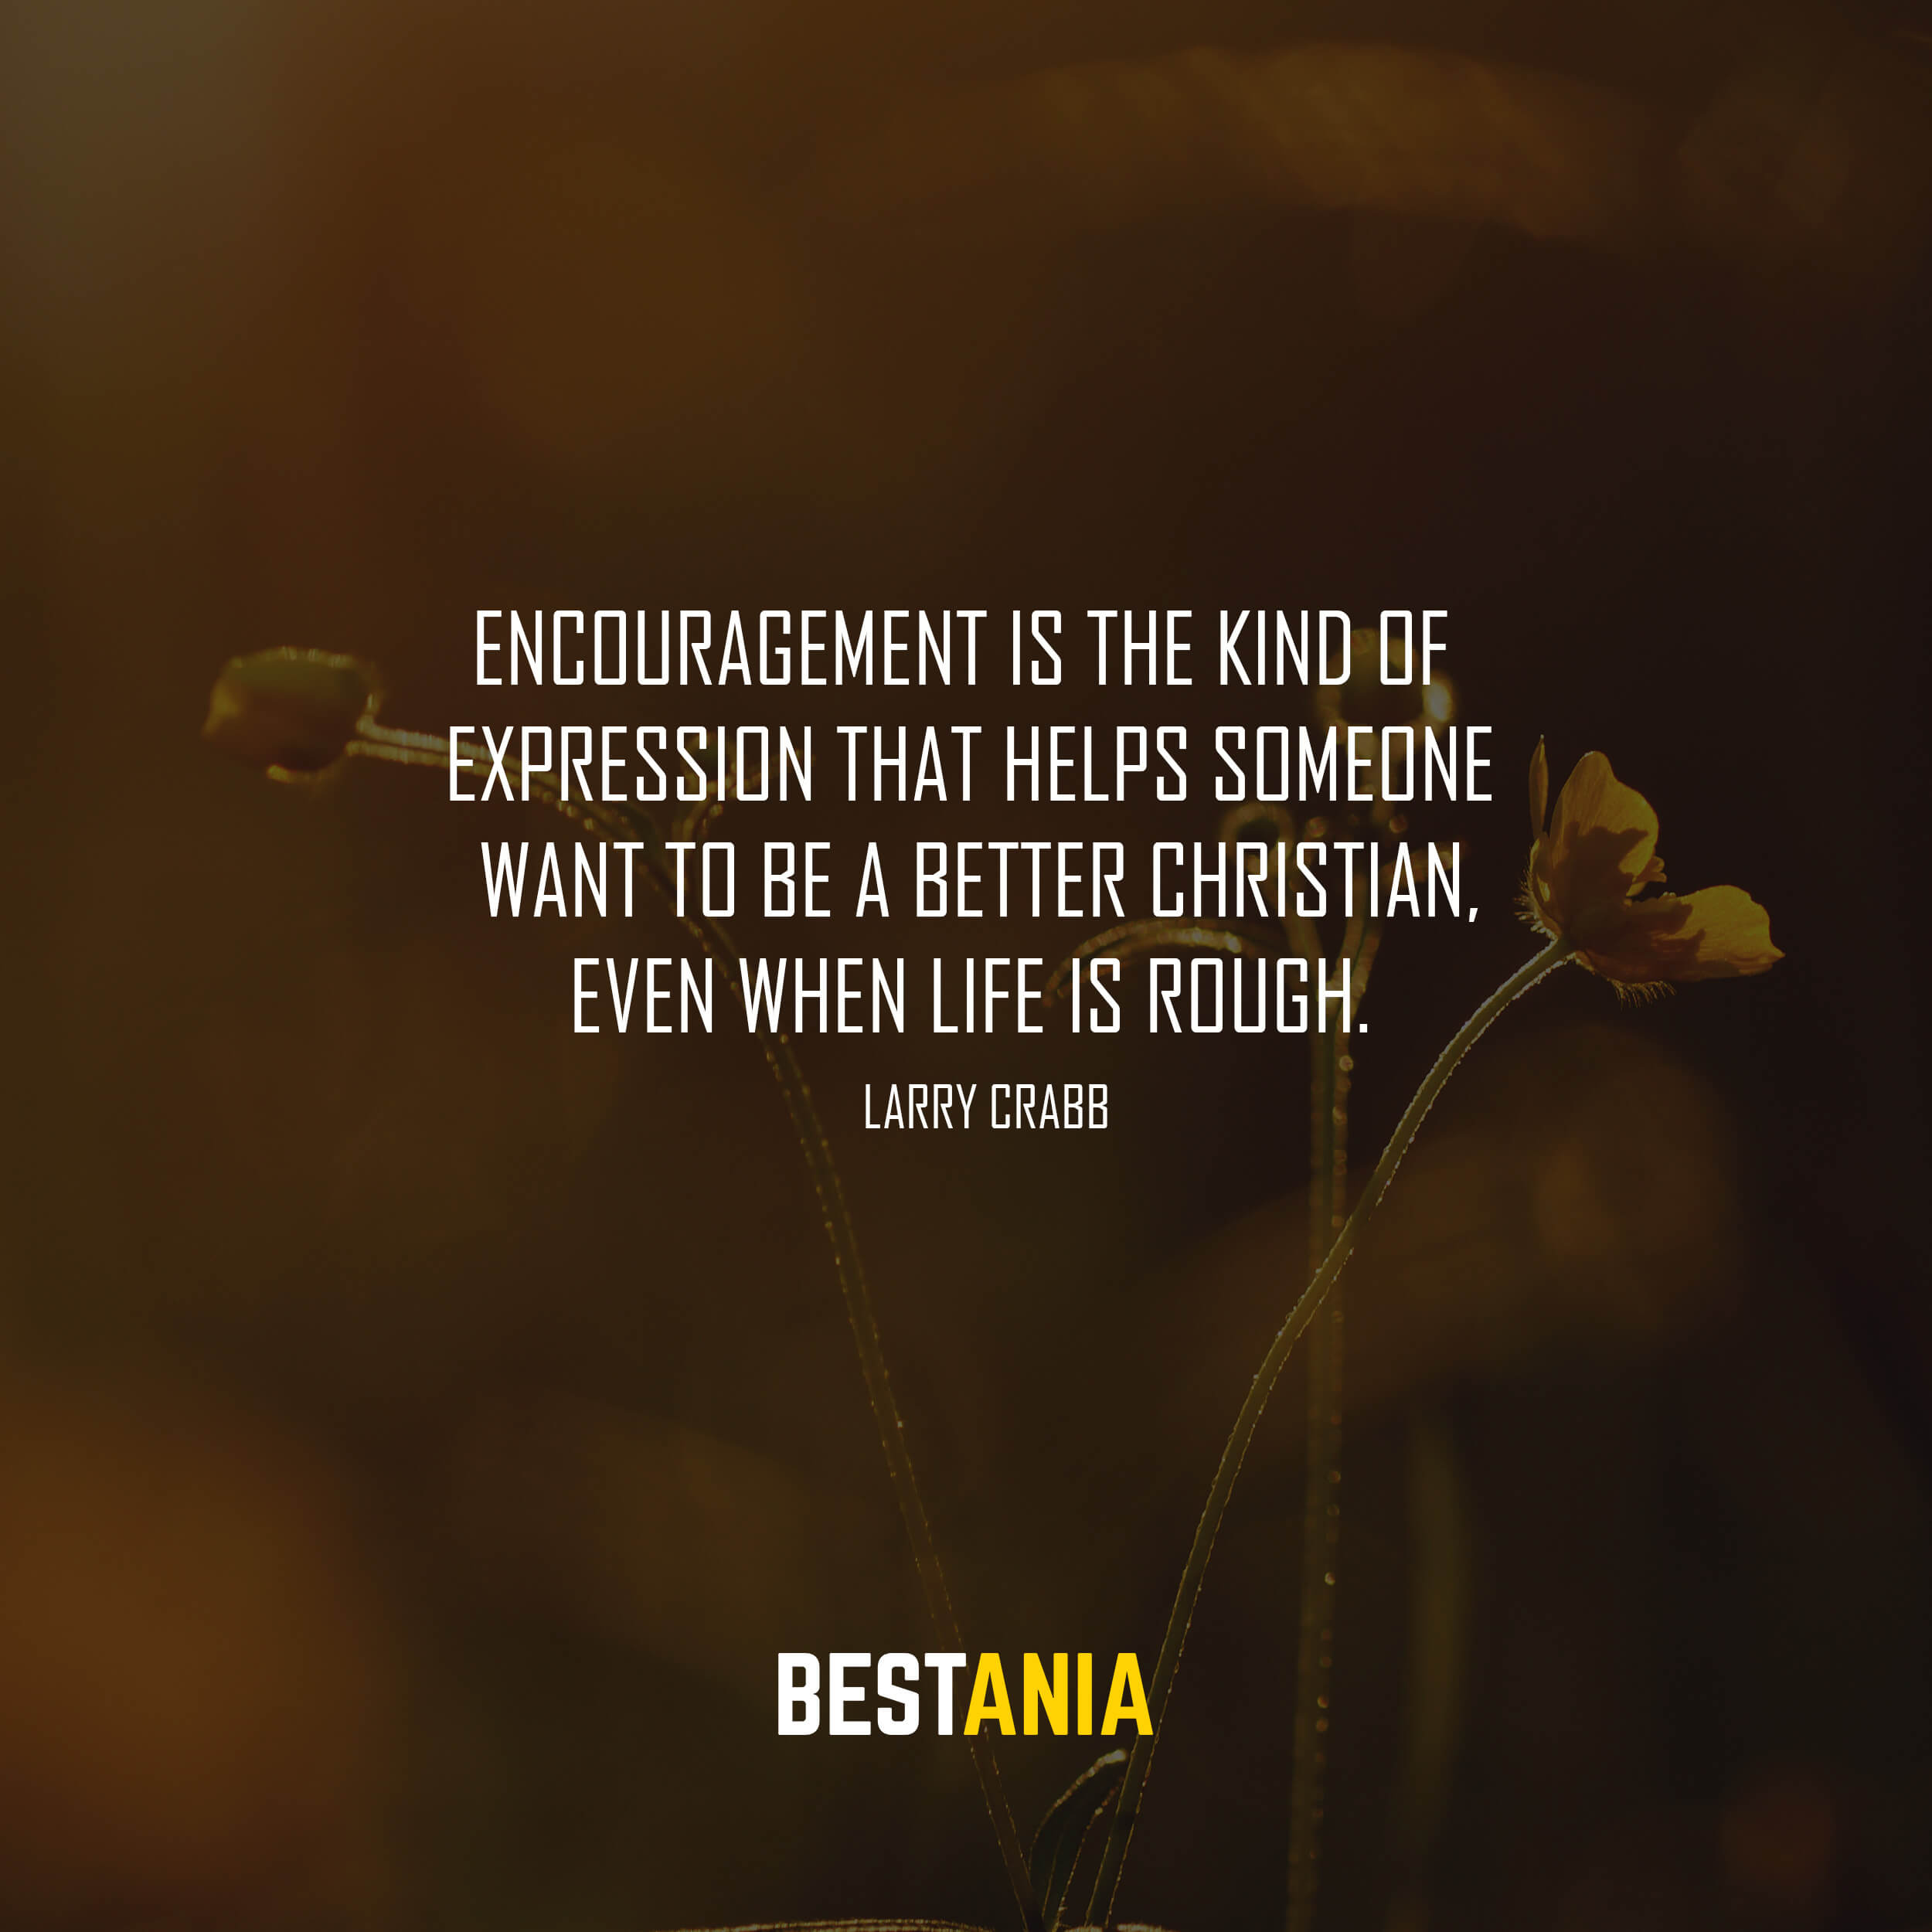 Encouragement is the kind of expression that helps someone want to be a better Christian, even when life is rough. Larry Crabb